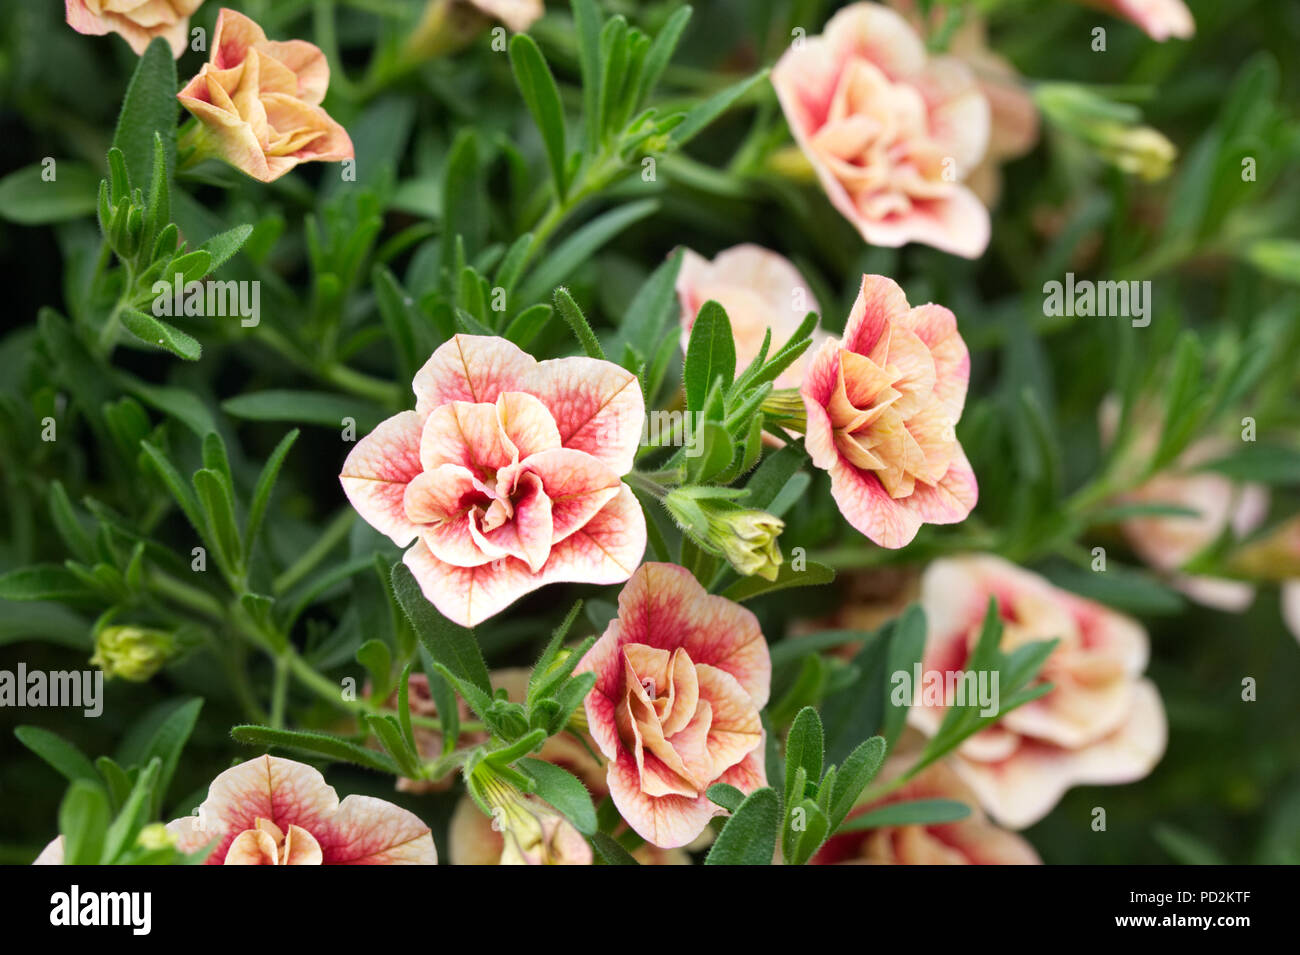 Calibrachoa Can Can Double Apricot with Red Eye flowers. - Stock Image